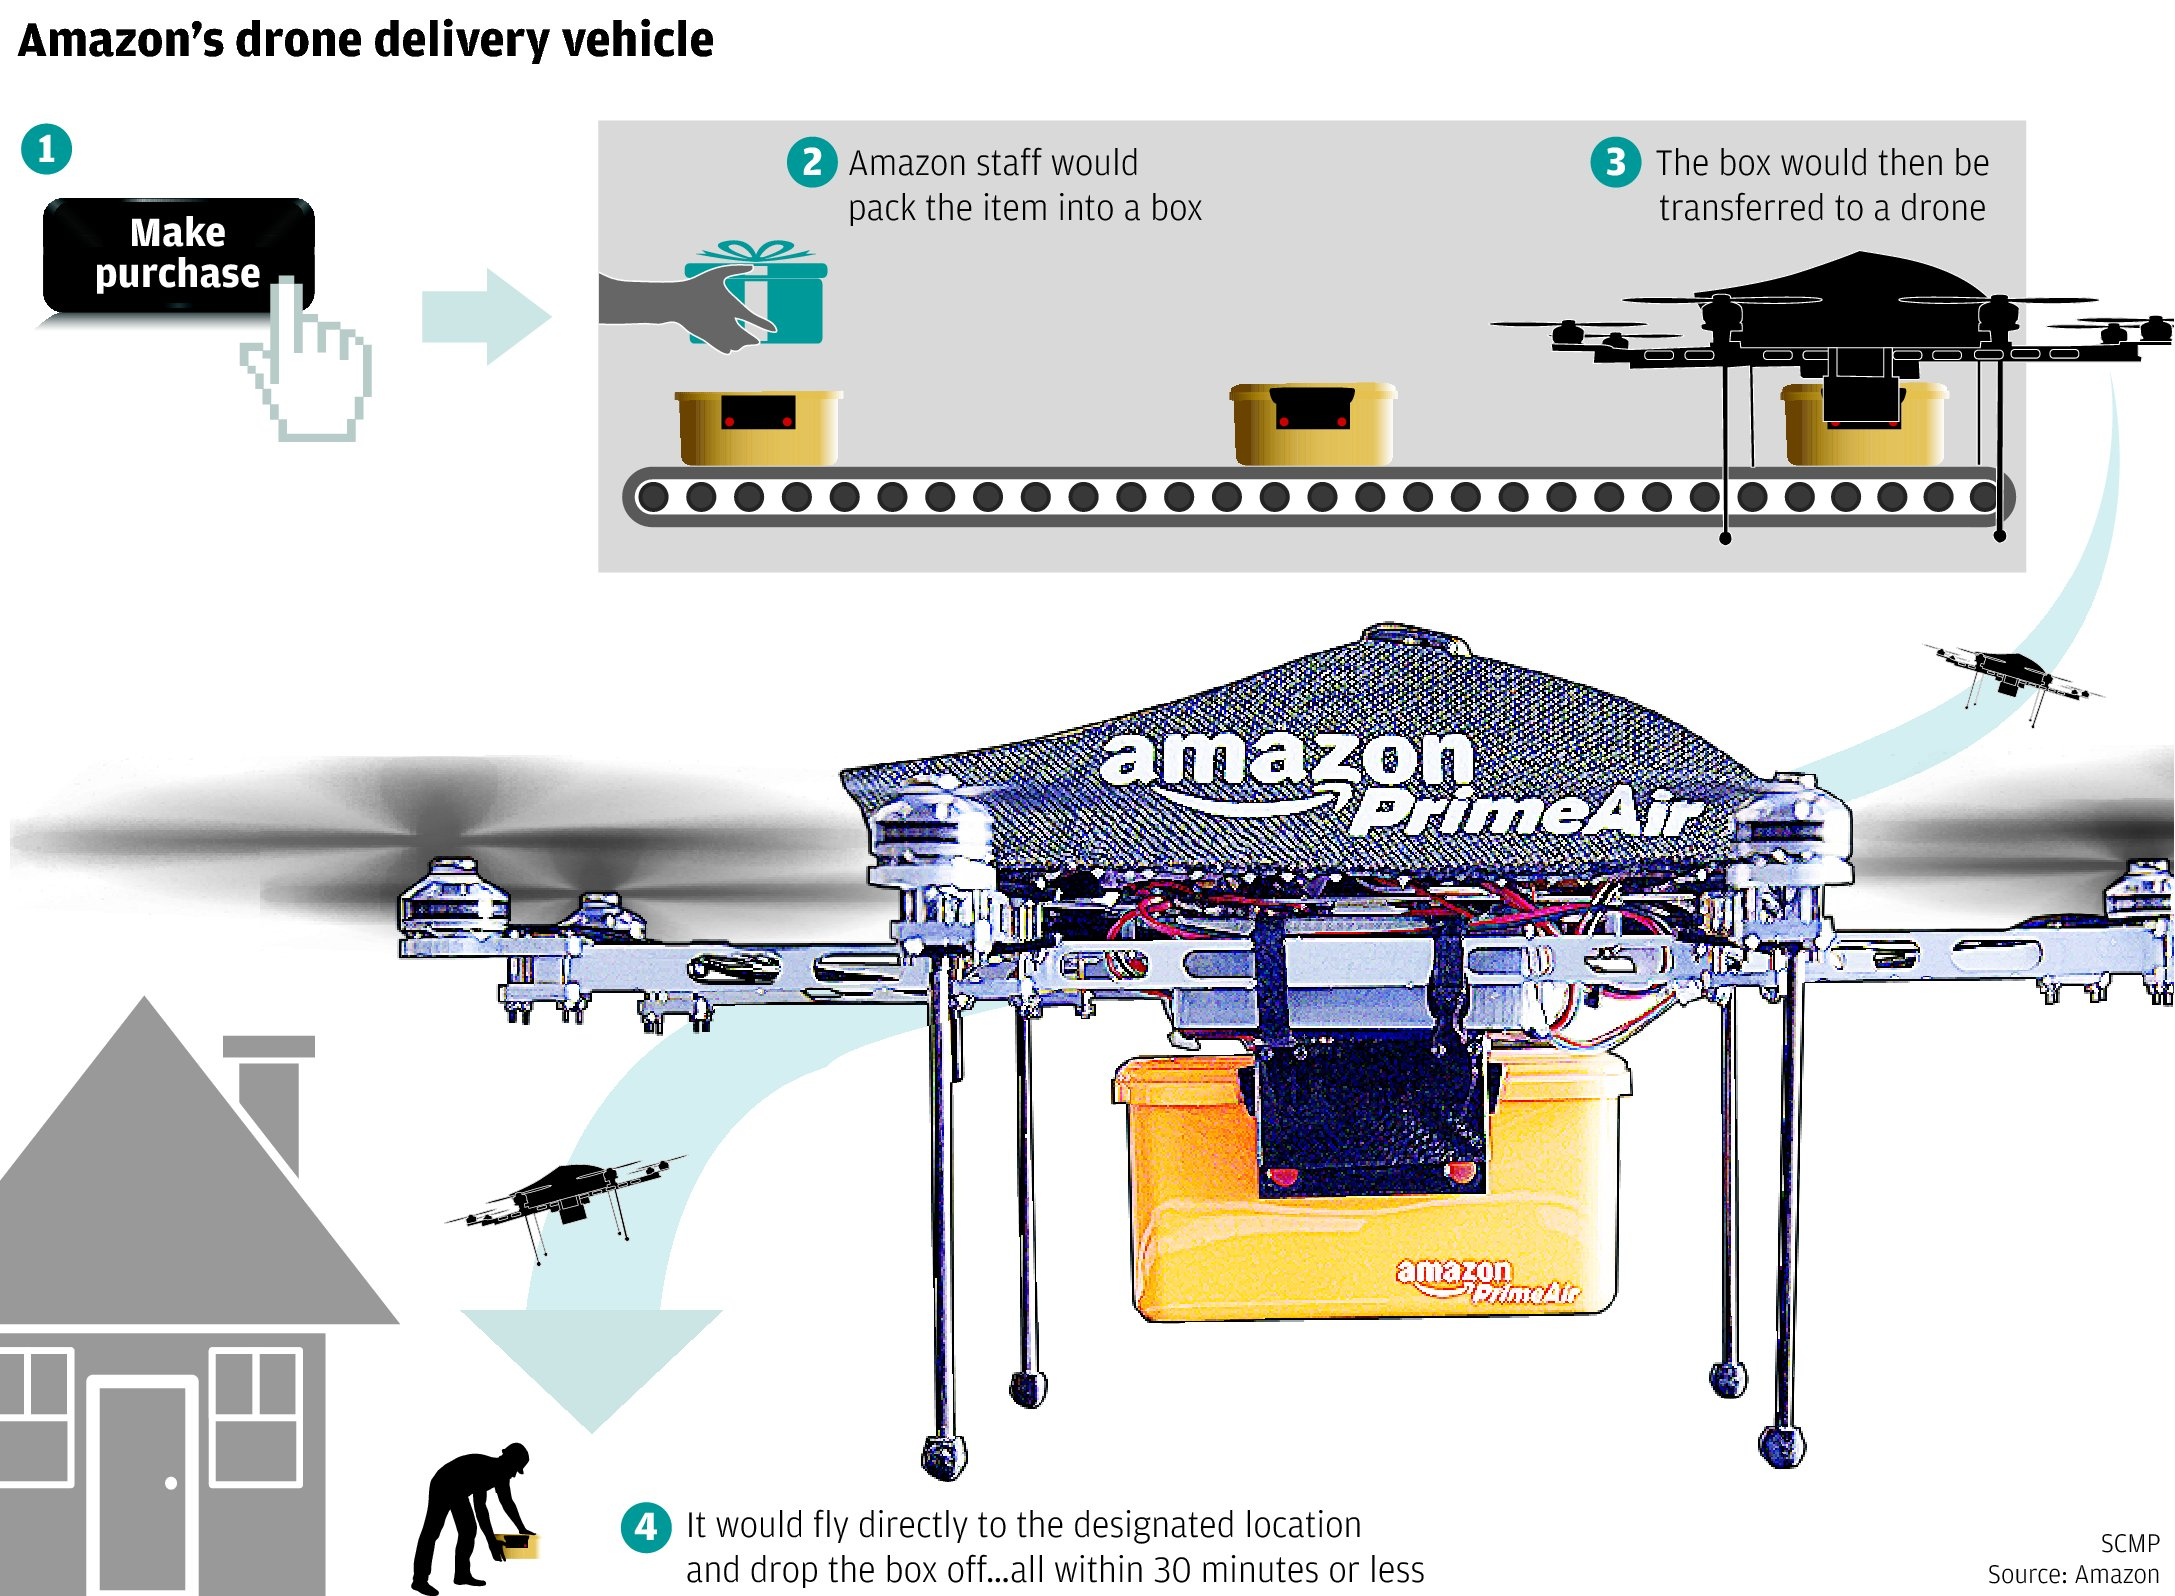 Amazon Testing Octocopter Drones To Fly Packages A Customers